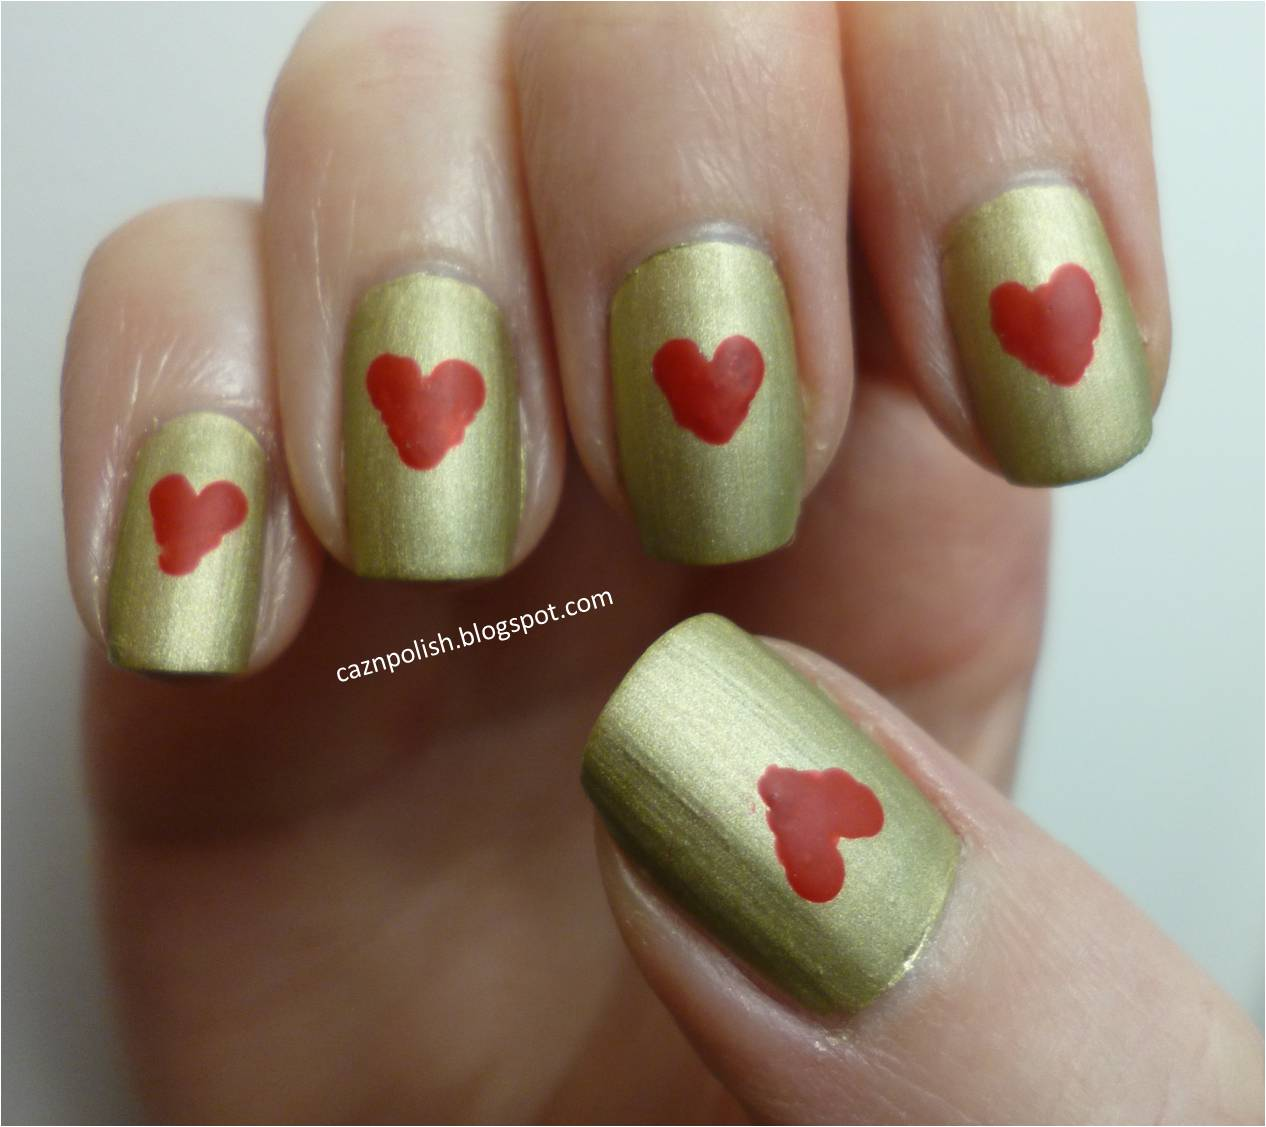 caz 'n' polish | Heart Nail Art